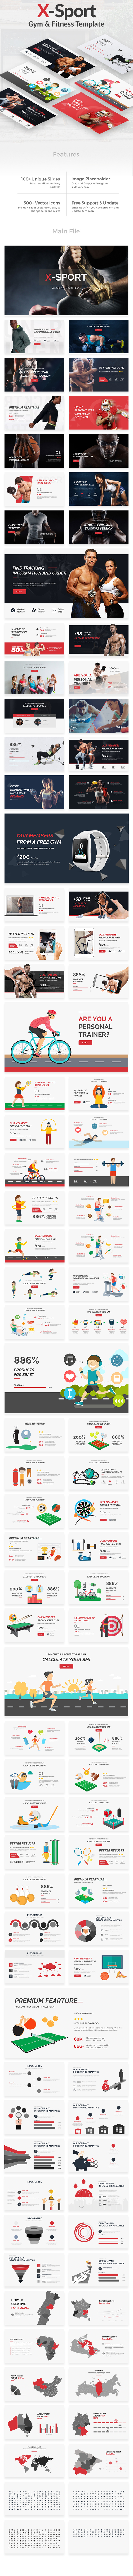 XSport Gym and Fitness Powerpoint Template - Creative PowerPoint Templates